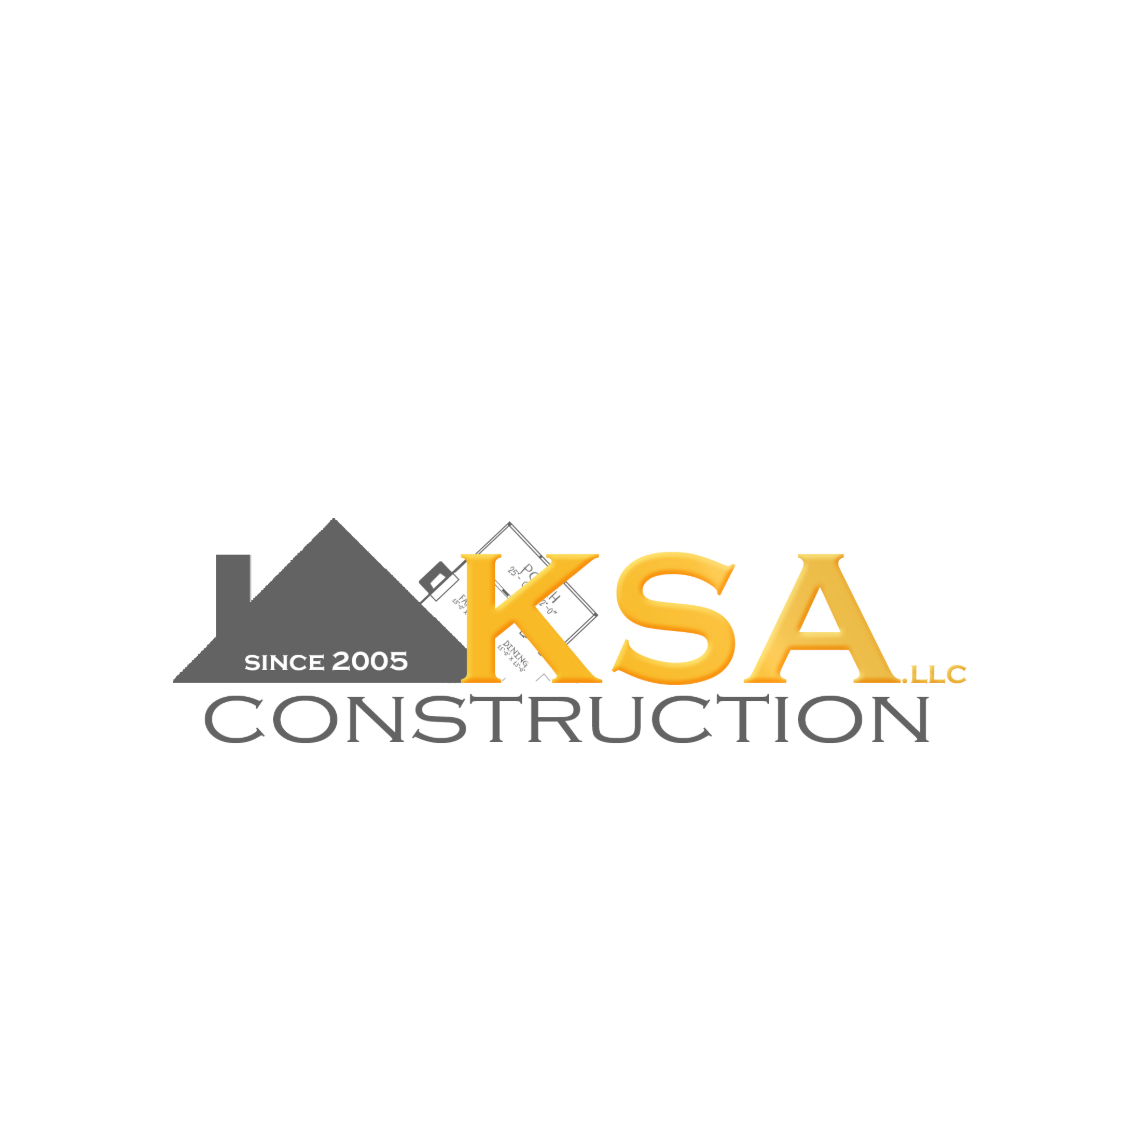 Contractor in CA Bell 90201 KSA Construction 7518 Ira Ave  (323)613-2181